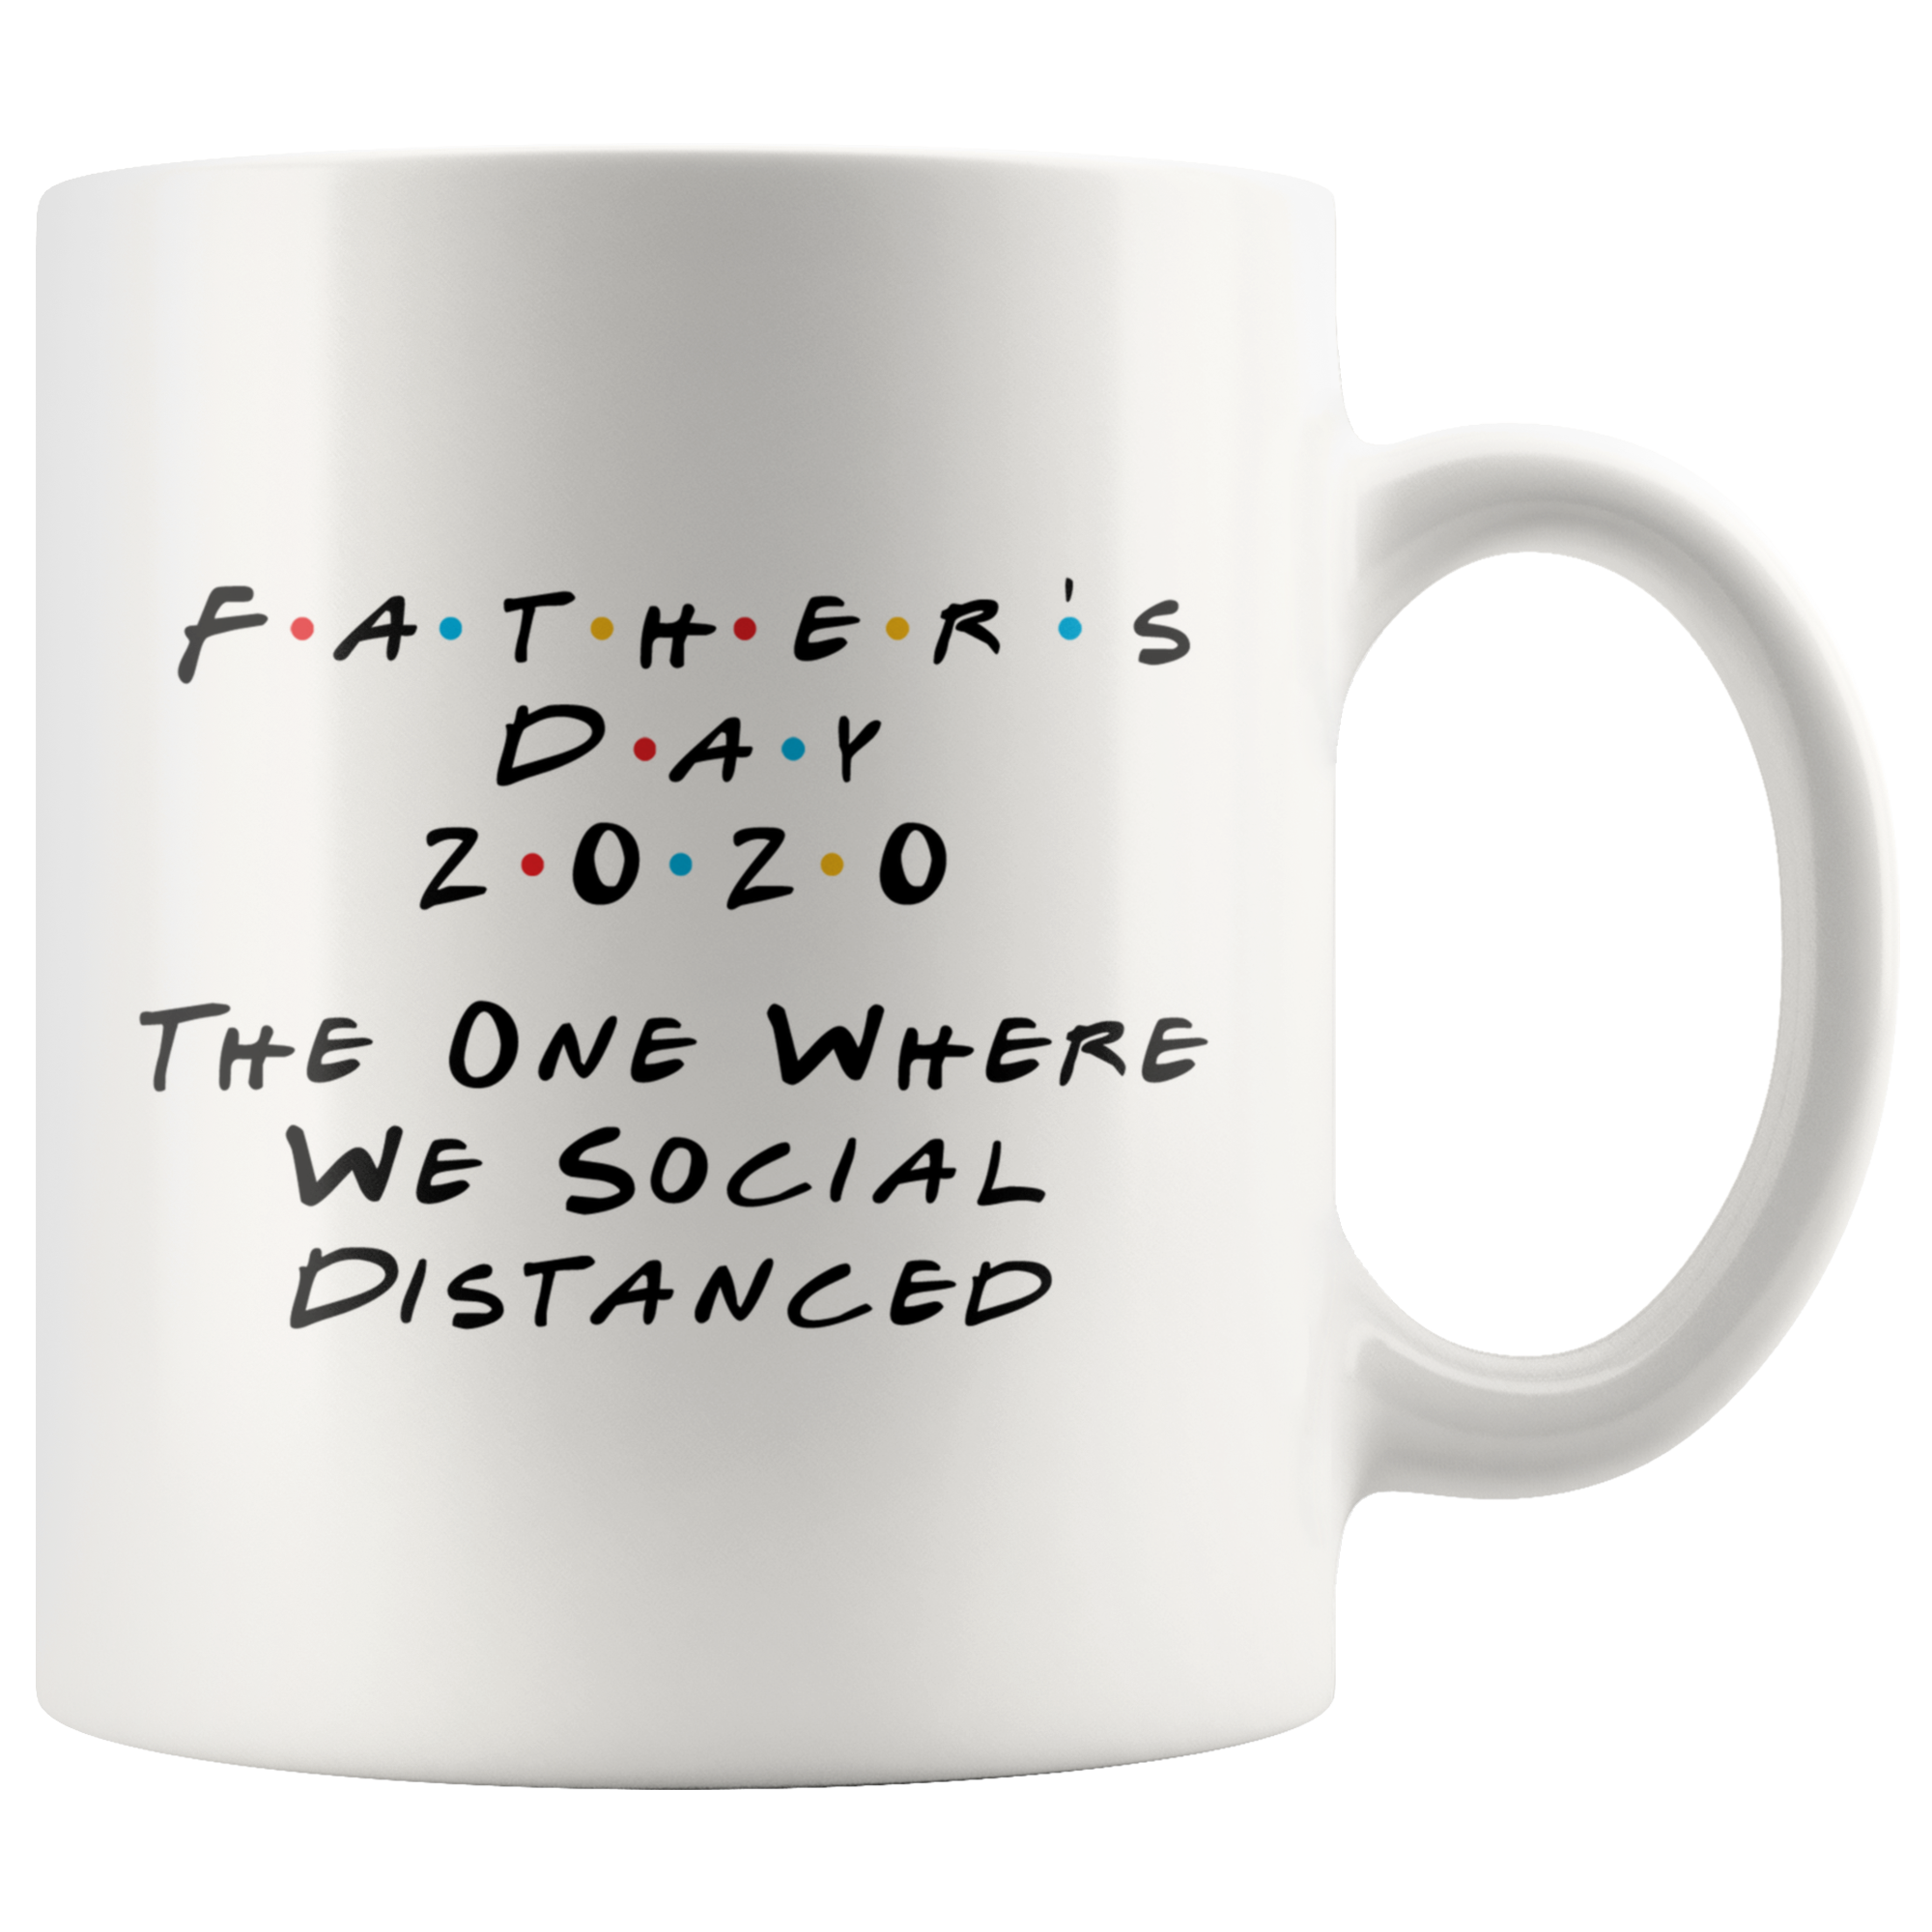 Father's Day 2020, The One Where We Social Distanced - White Mug